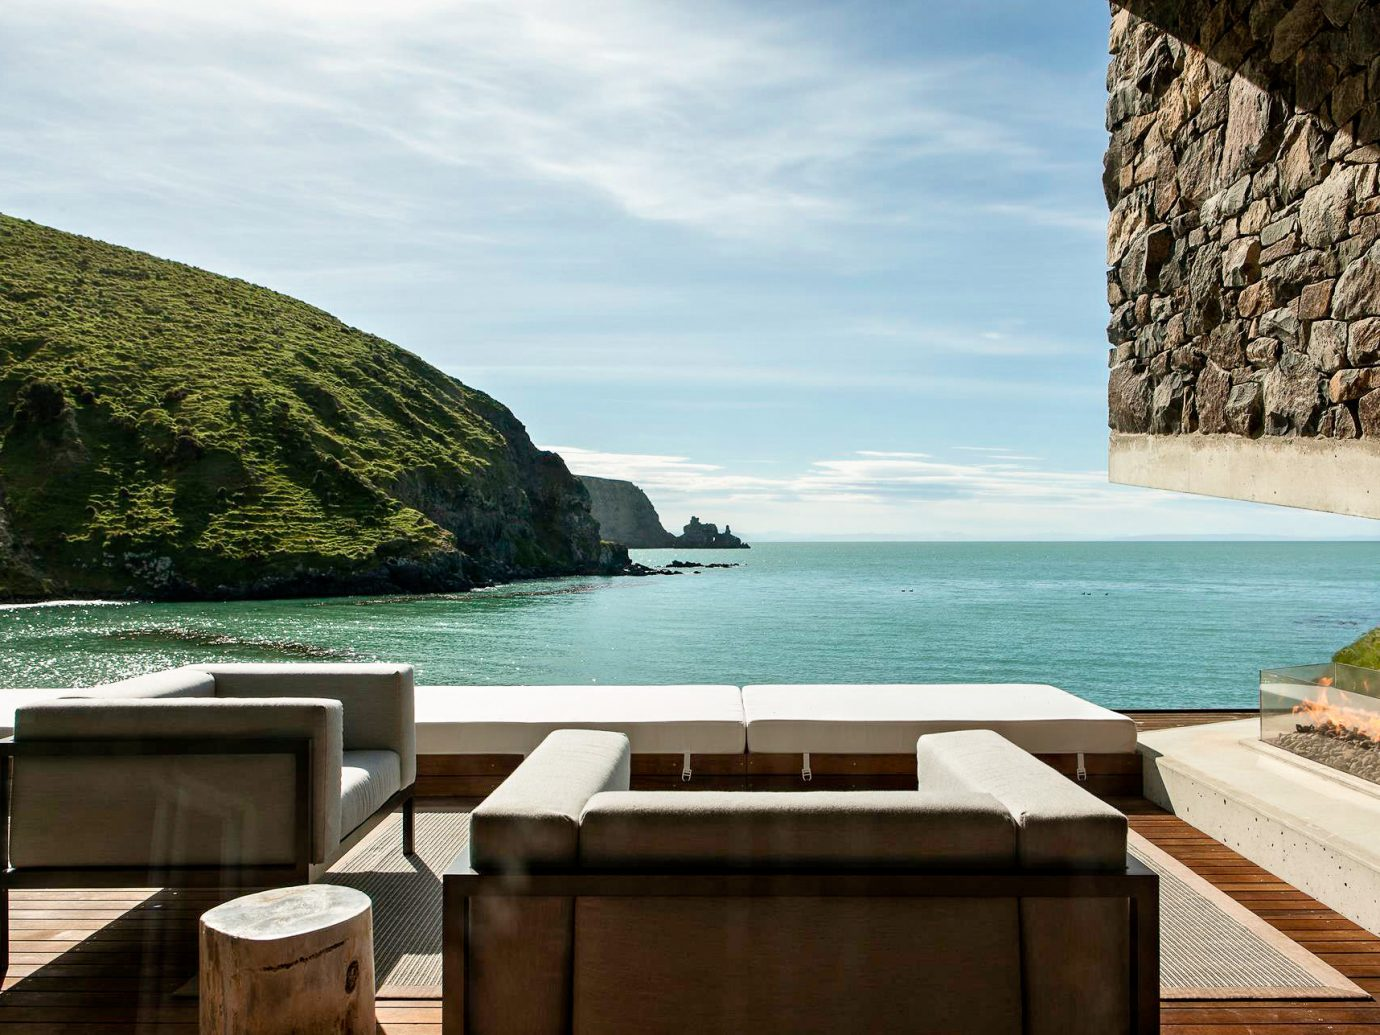 Beach front seating at Annandale, New Zealand